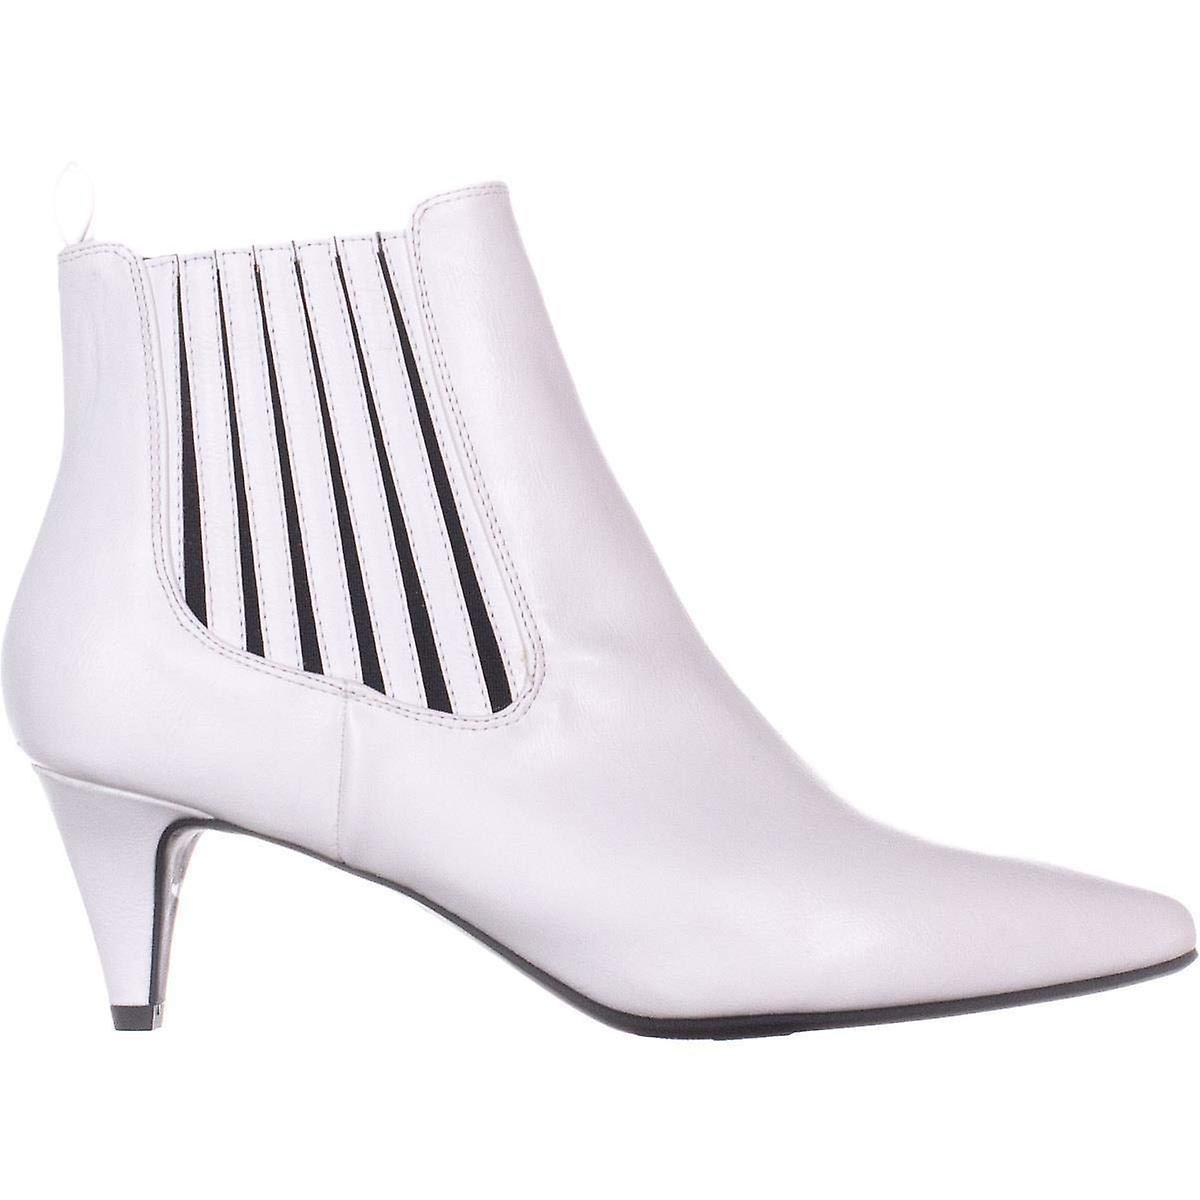 Bar III Womens Eliza Leather Pointed Toe Ankle Fashion Boots